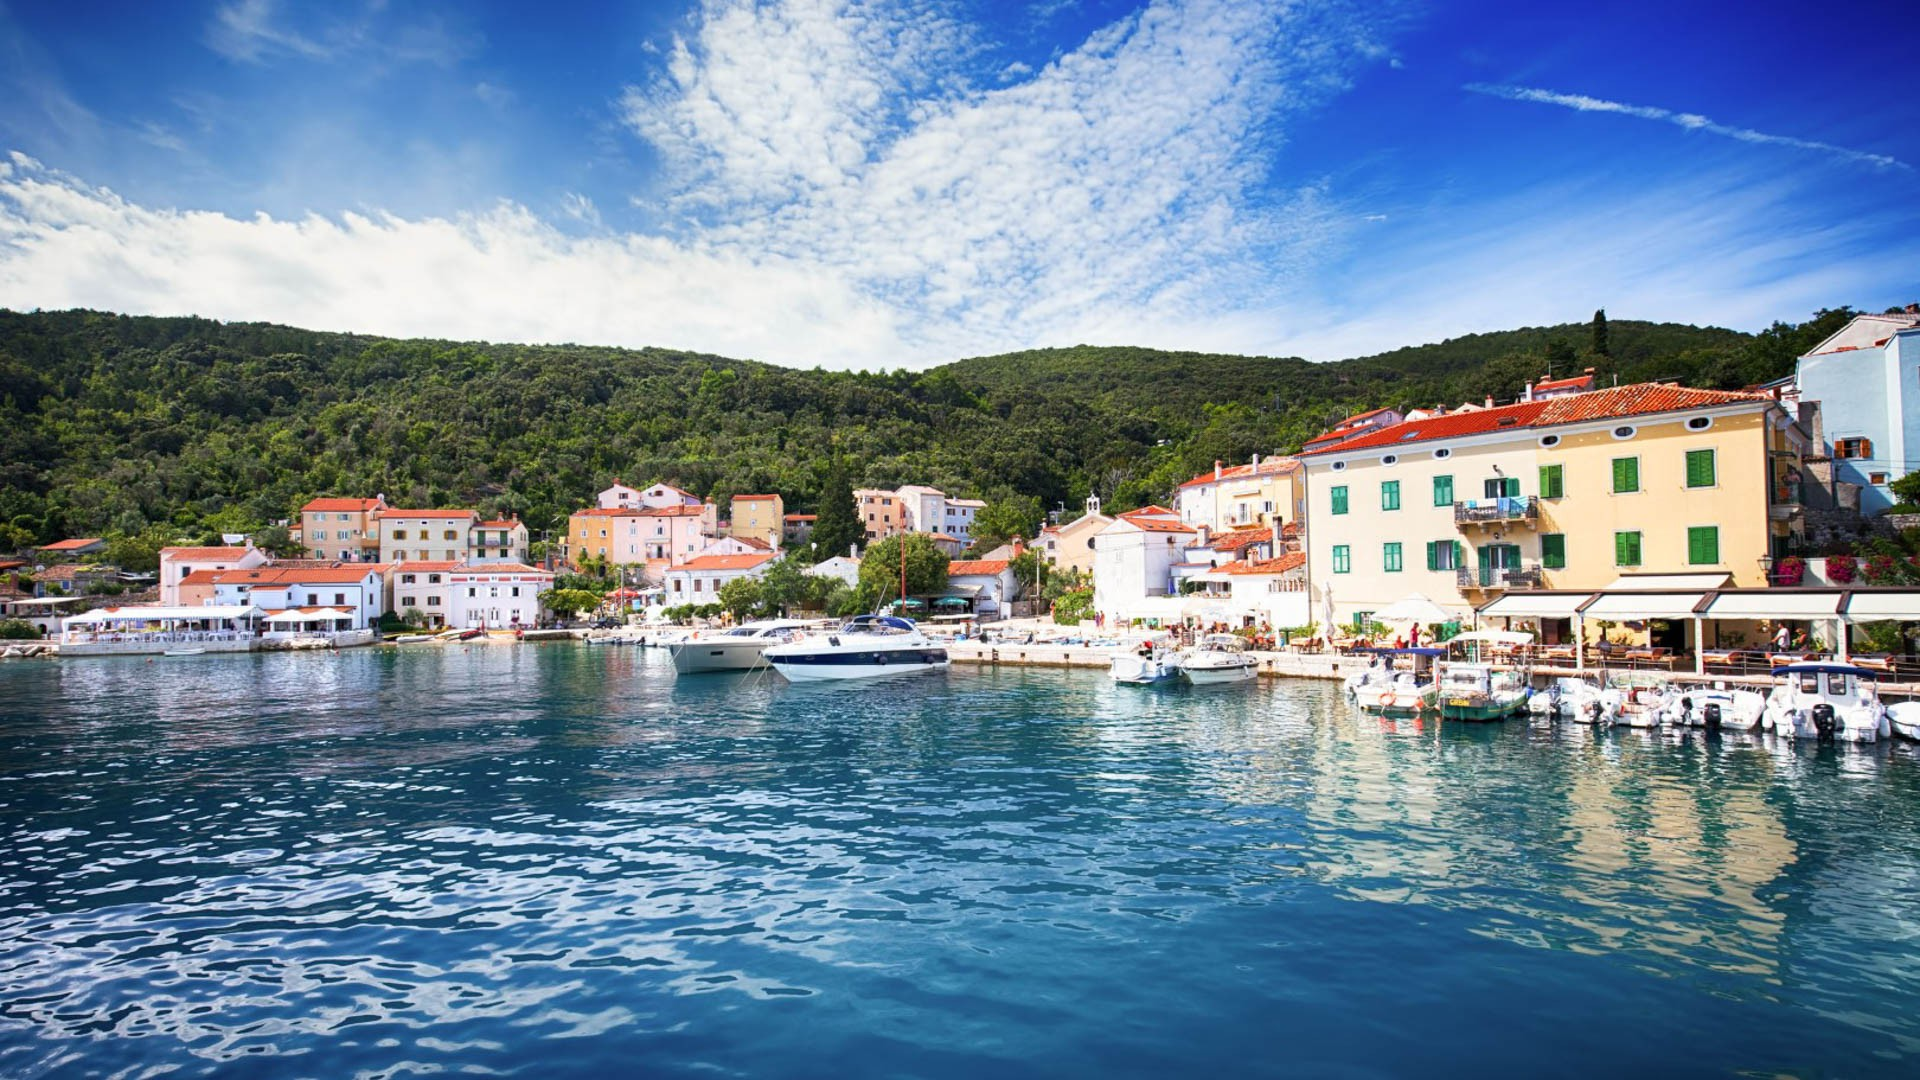 Cres - Adriatic Sea | Croatia Cruise Croatia Cruise